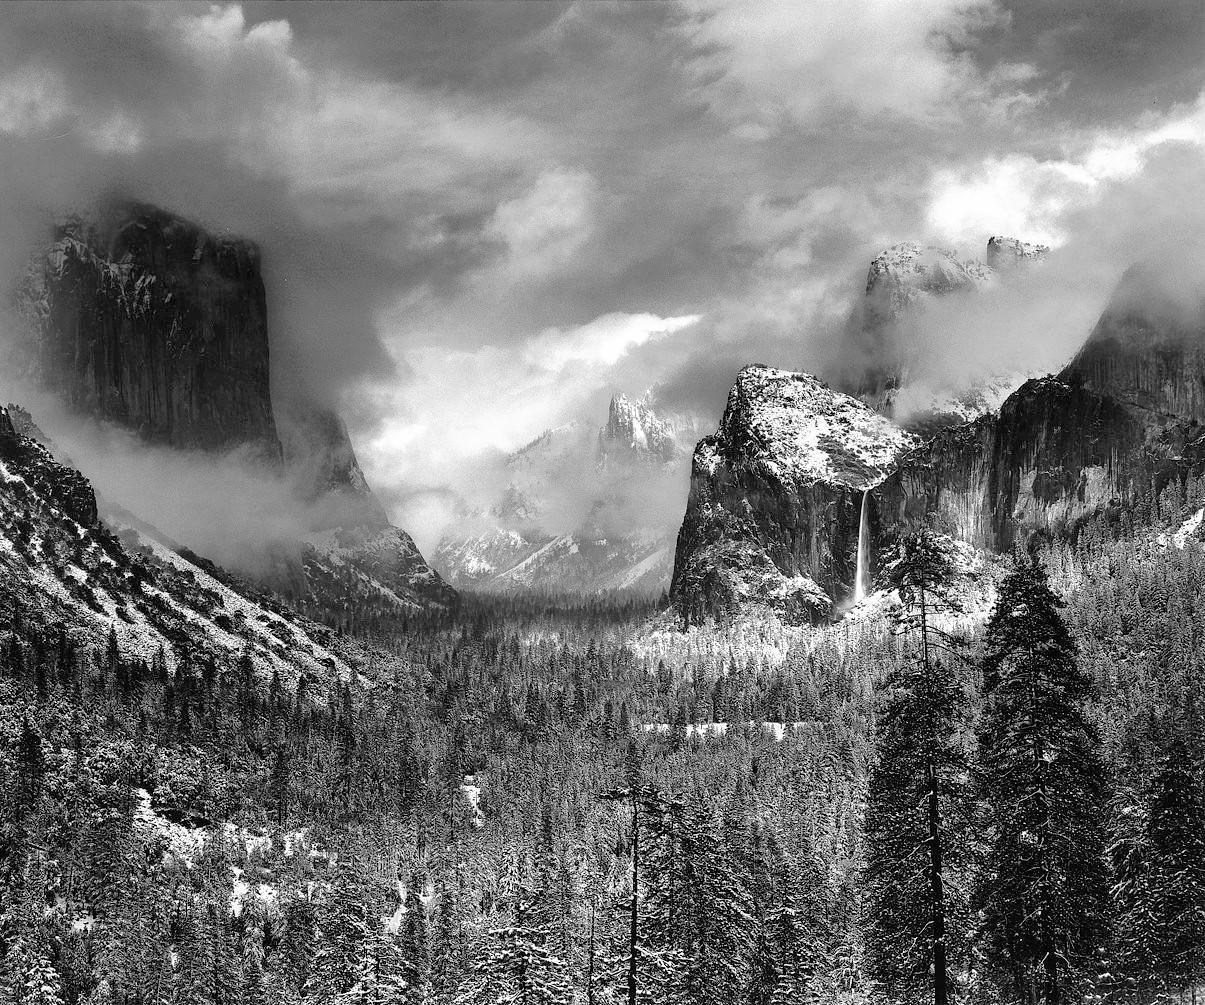 ansel adams yosemite essay Ansel 'yosemite' adams essay 1949 words | 8 pages ansel adams was an american photographer known for his black and white photographs adams took most of his pictures of yosemite national park, the california coast, and other wilderness areas of the american west.